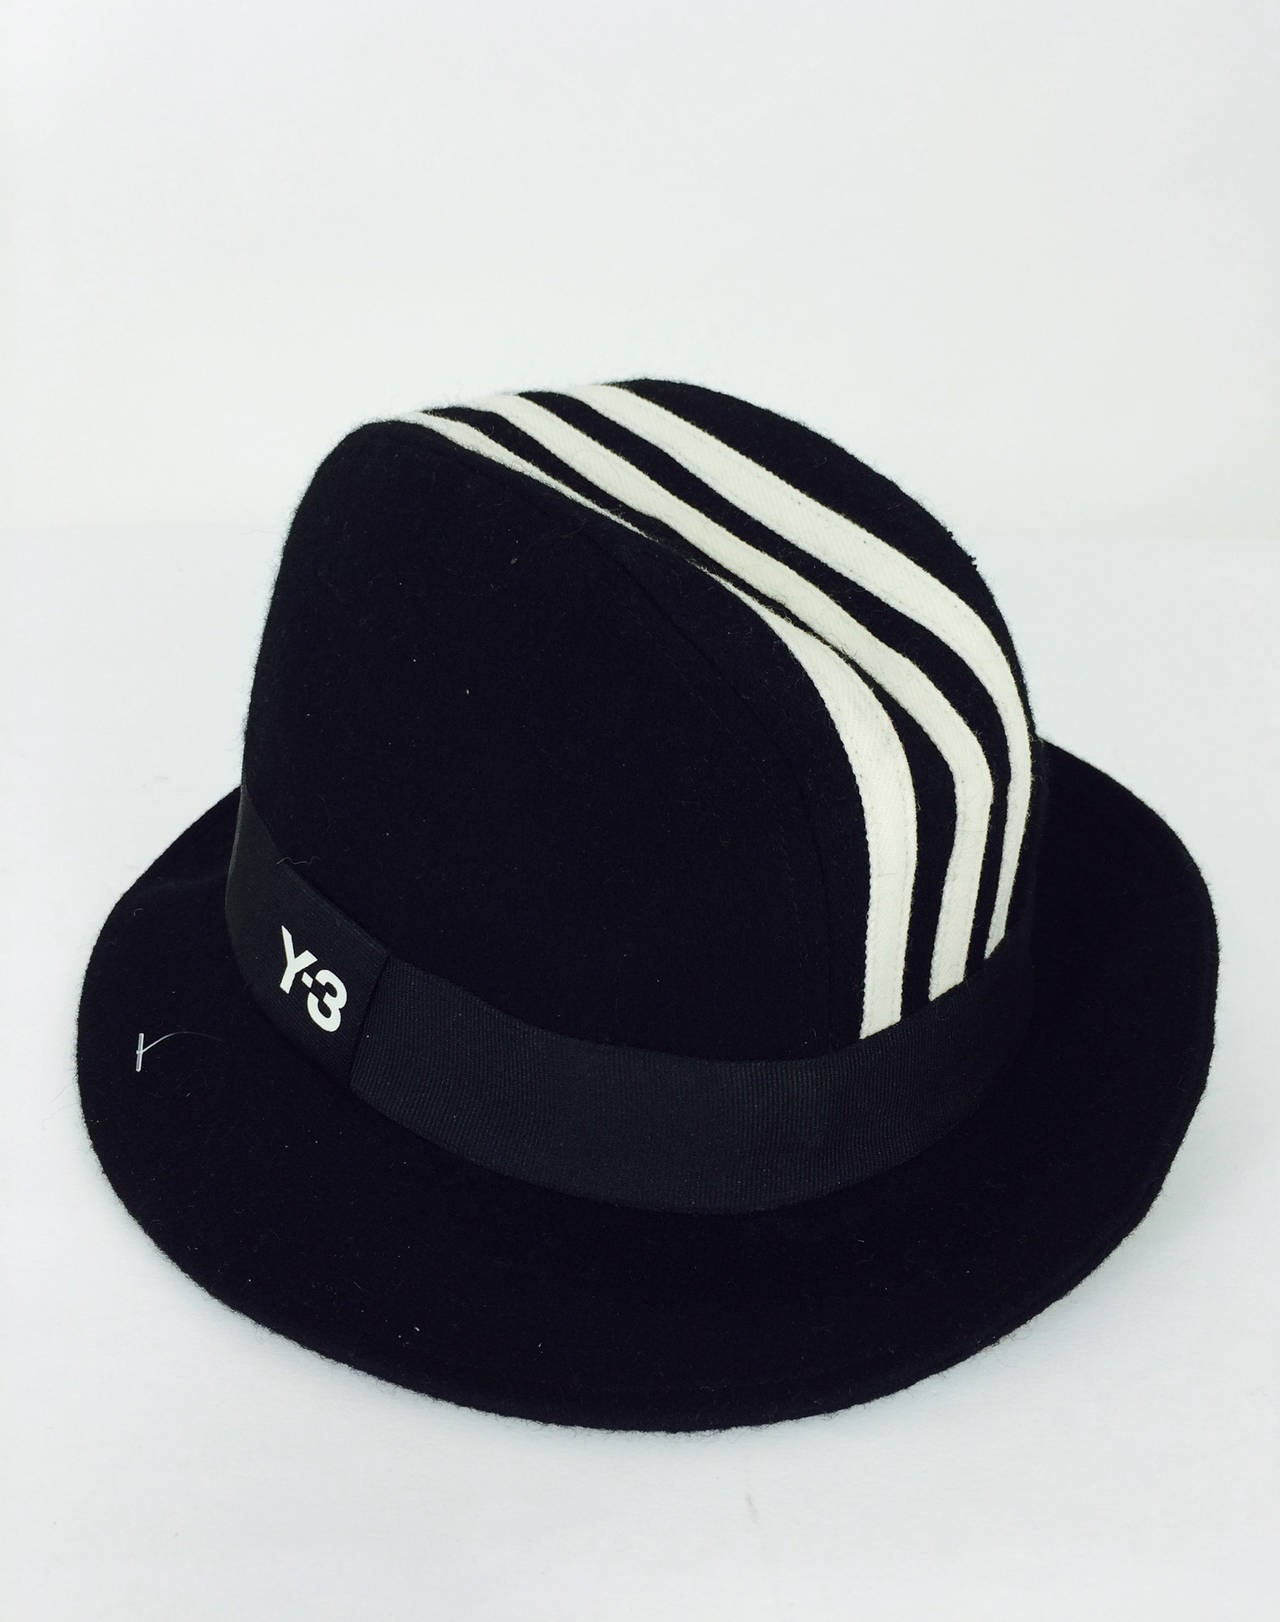 Yohji Yamamoto Y-3 Adidas cashmere blend trilby fedora In Excellent Condition For Sale In West Palm Beach, FL